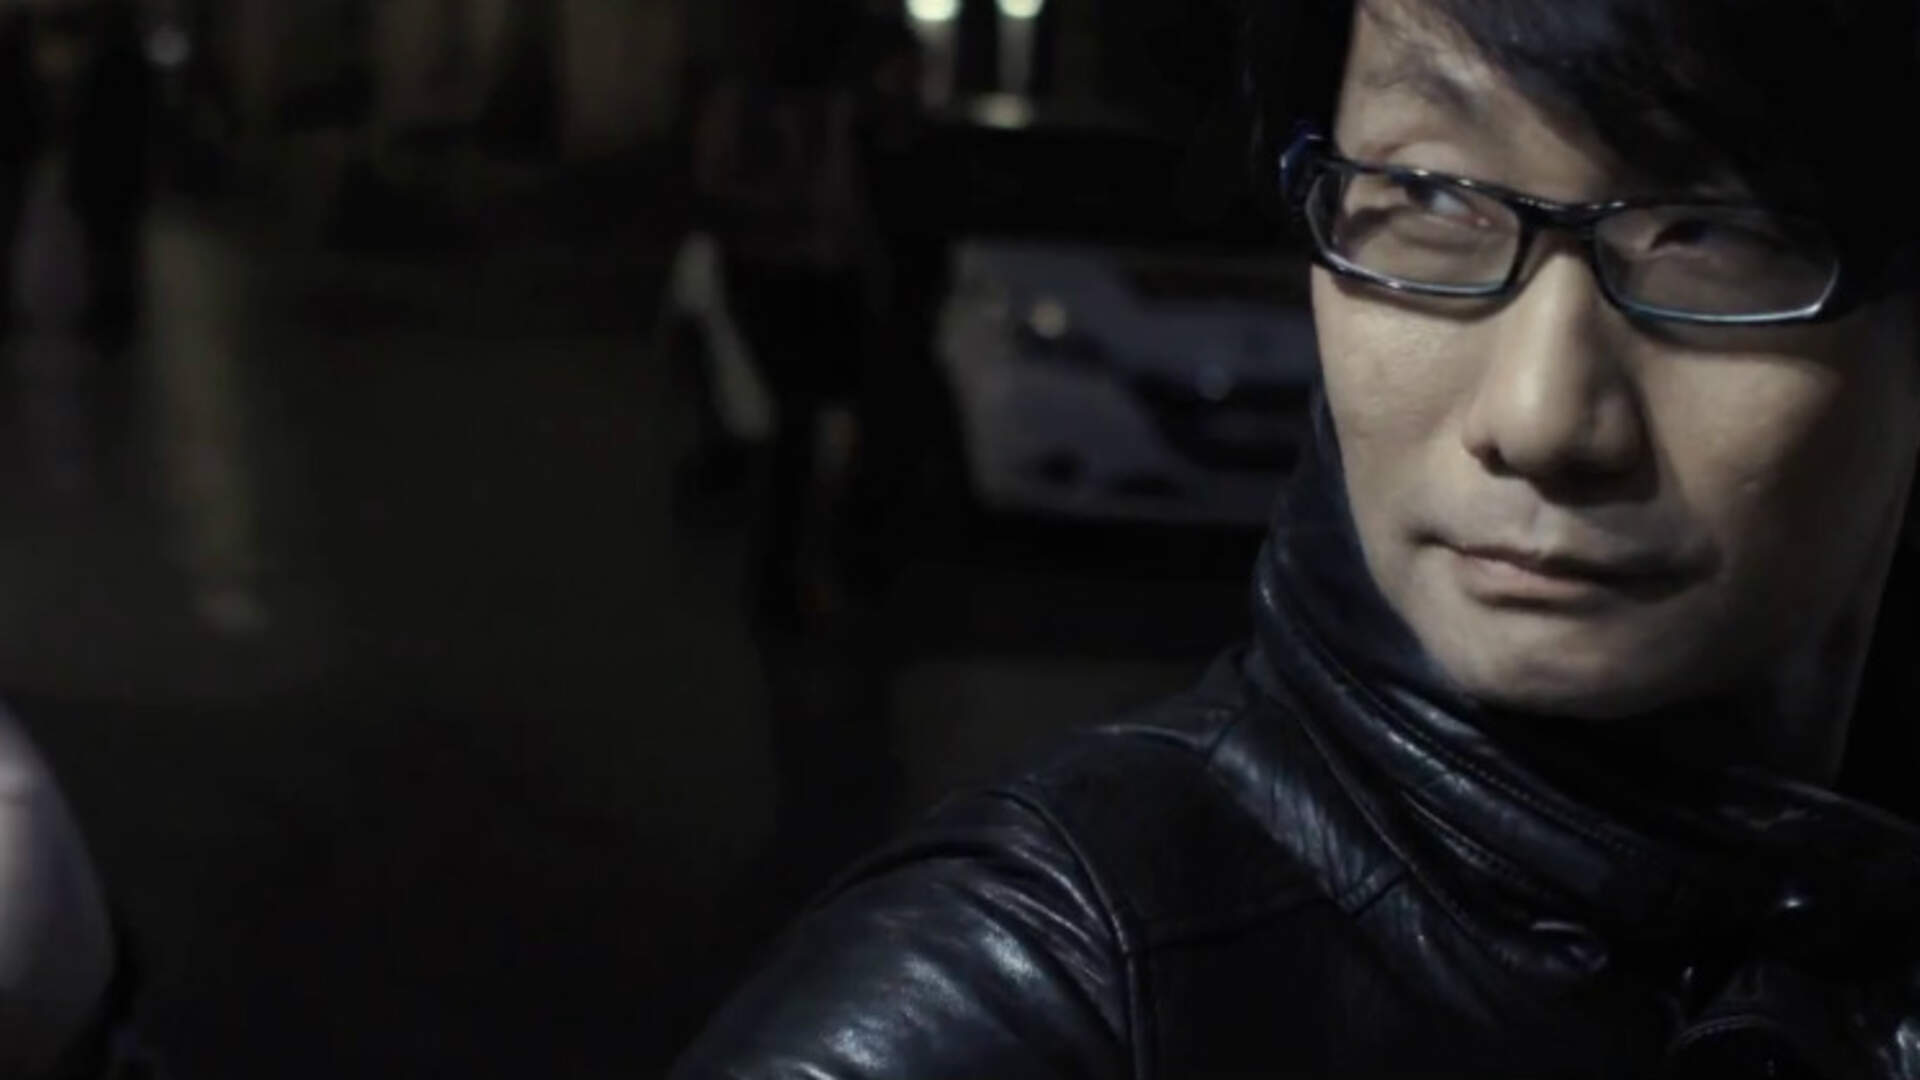 Hideo Kojima Closes the Door, Reportedly Leaves Konami [Updated]